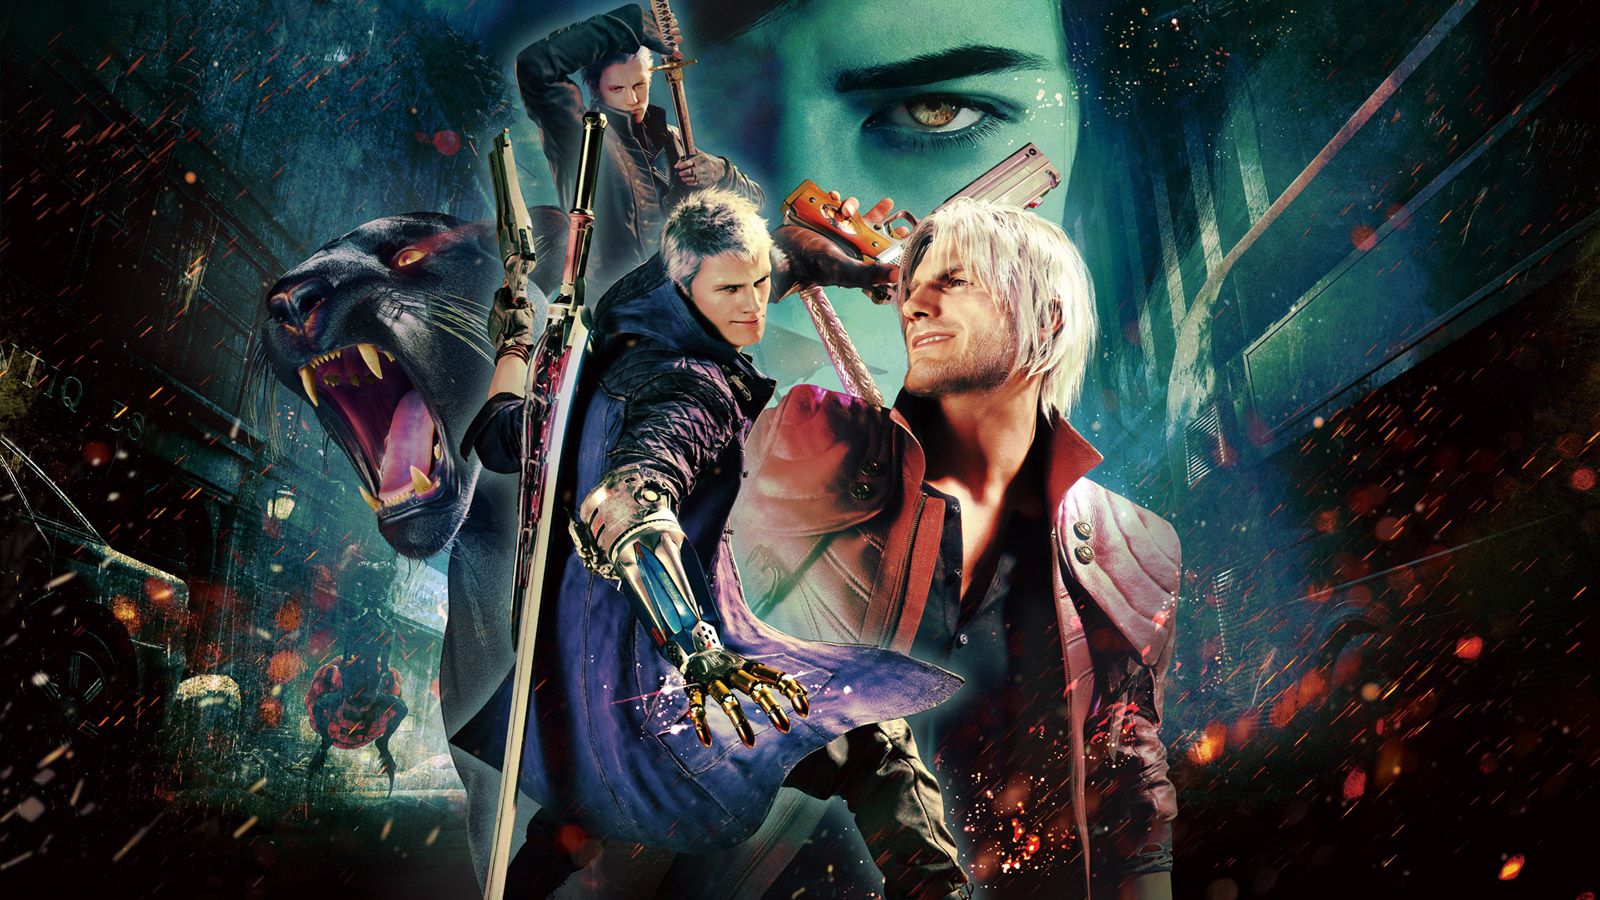 Devil May Cry 5 Wallpaper in 1600x900